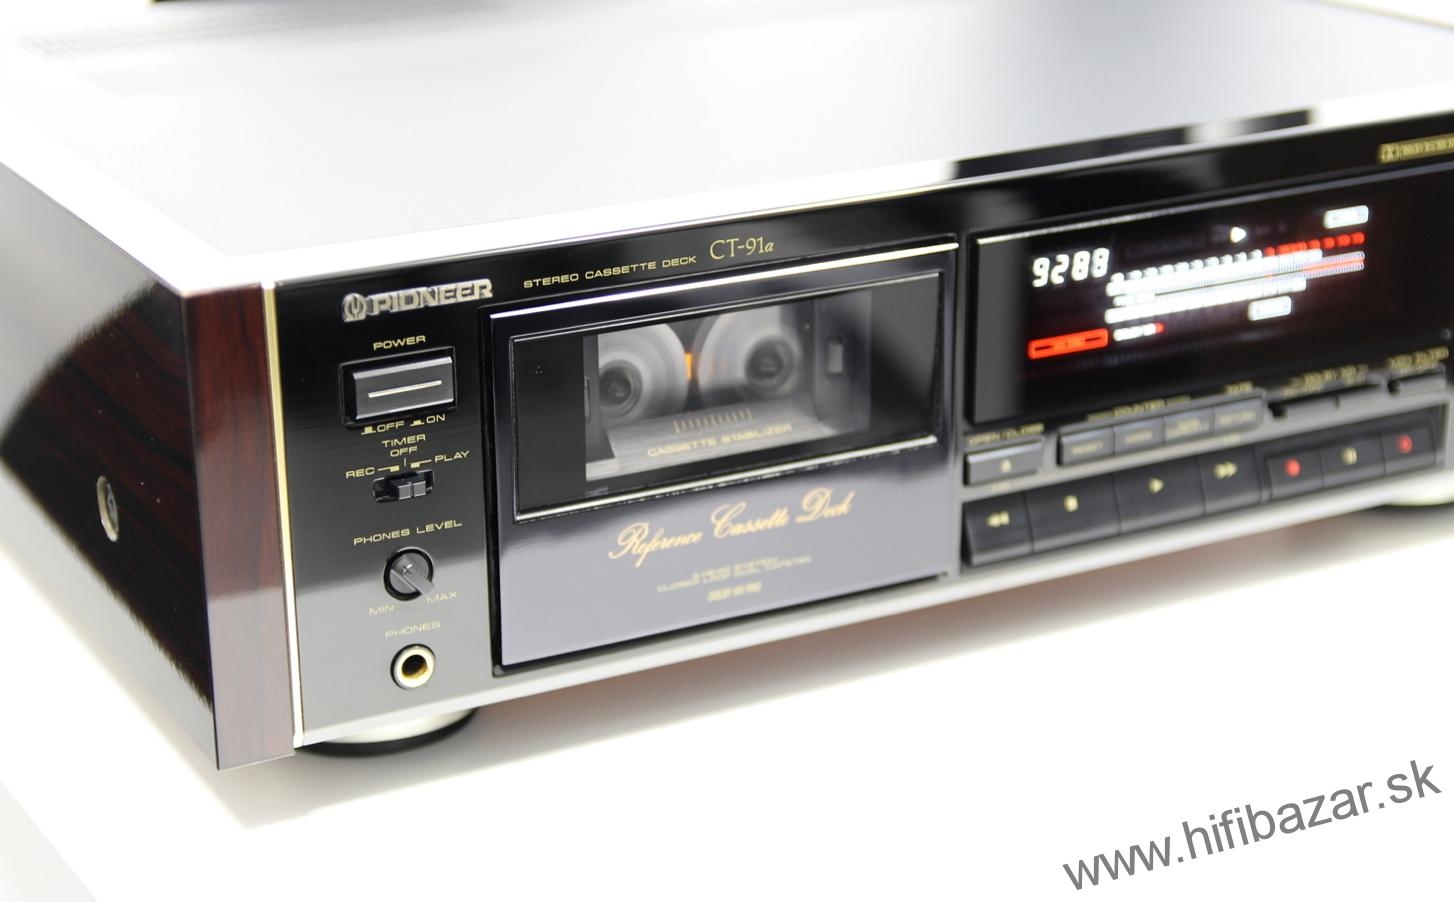 PIONEER CT-91a Reference Master